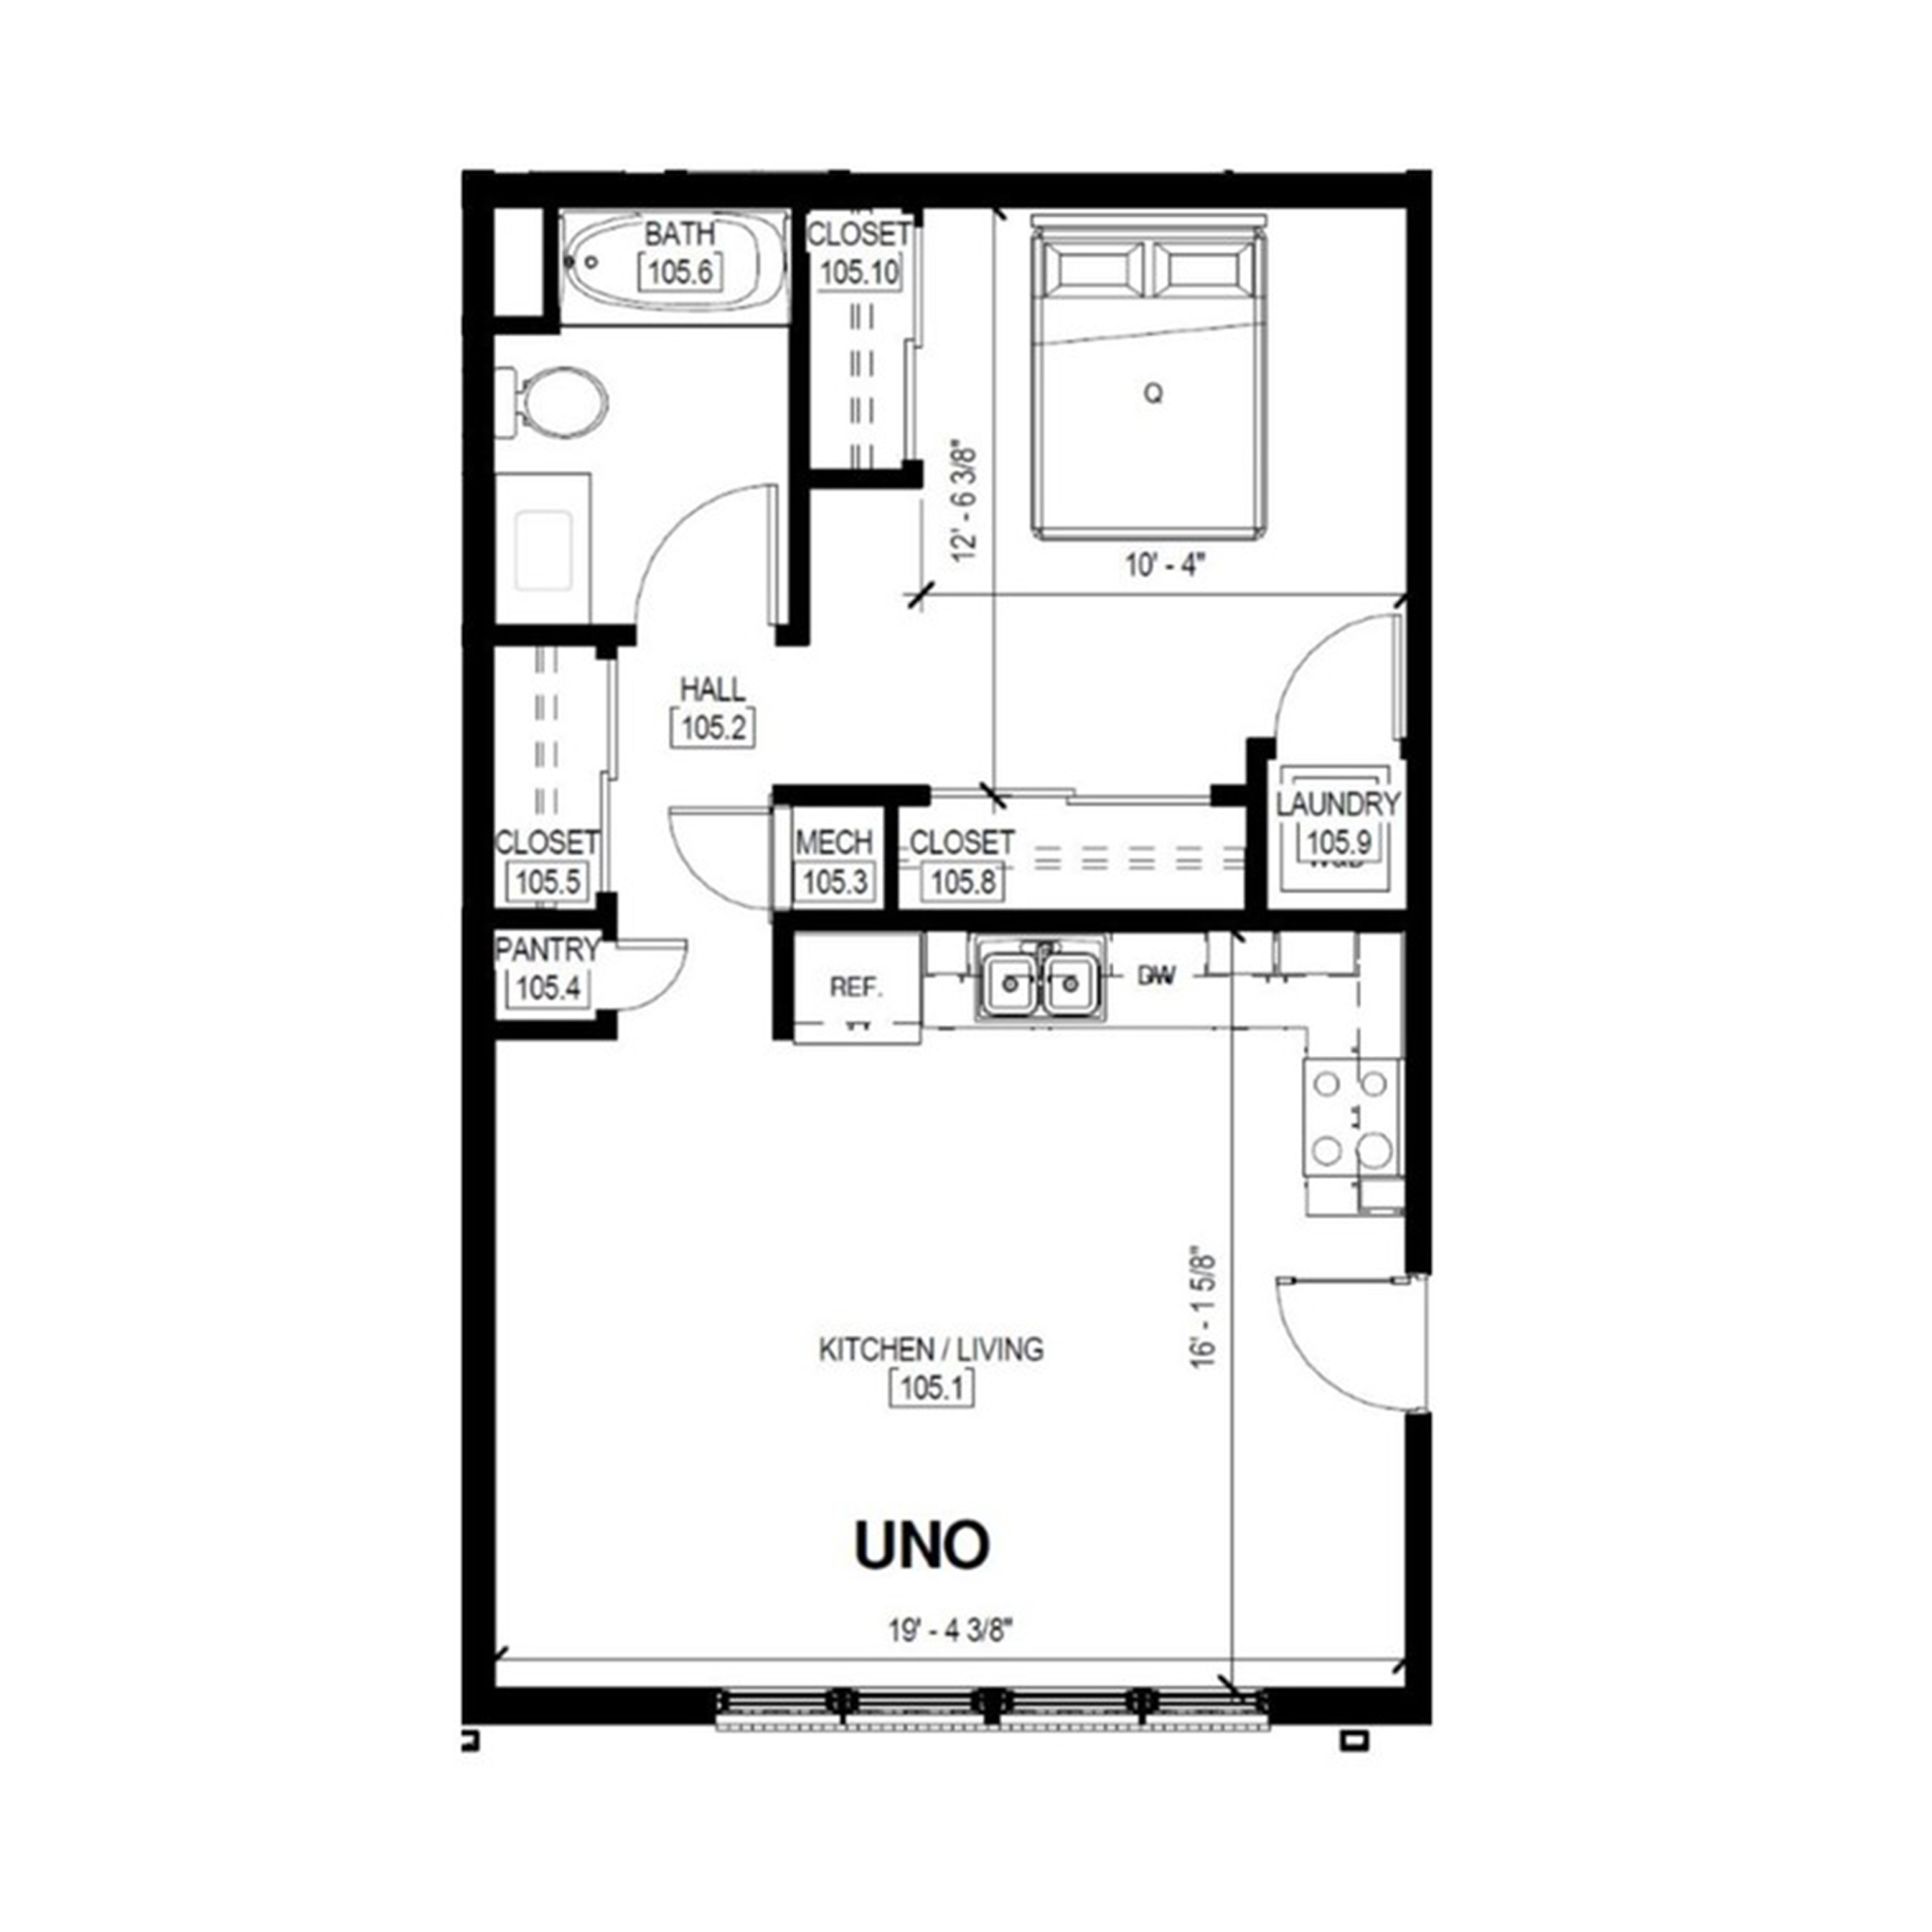 Uno A   1 Bed, 1 Bath